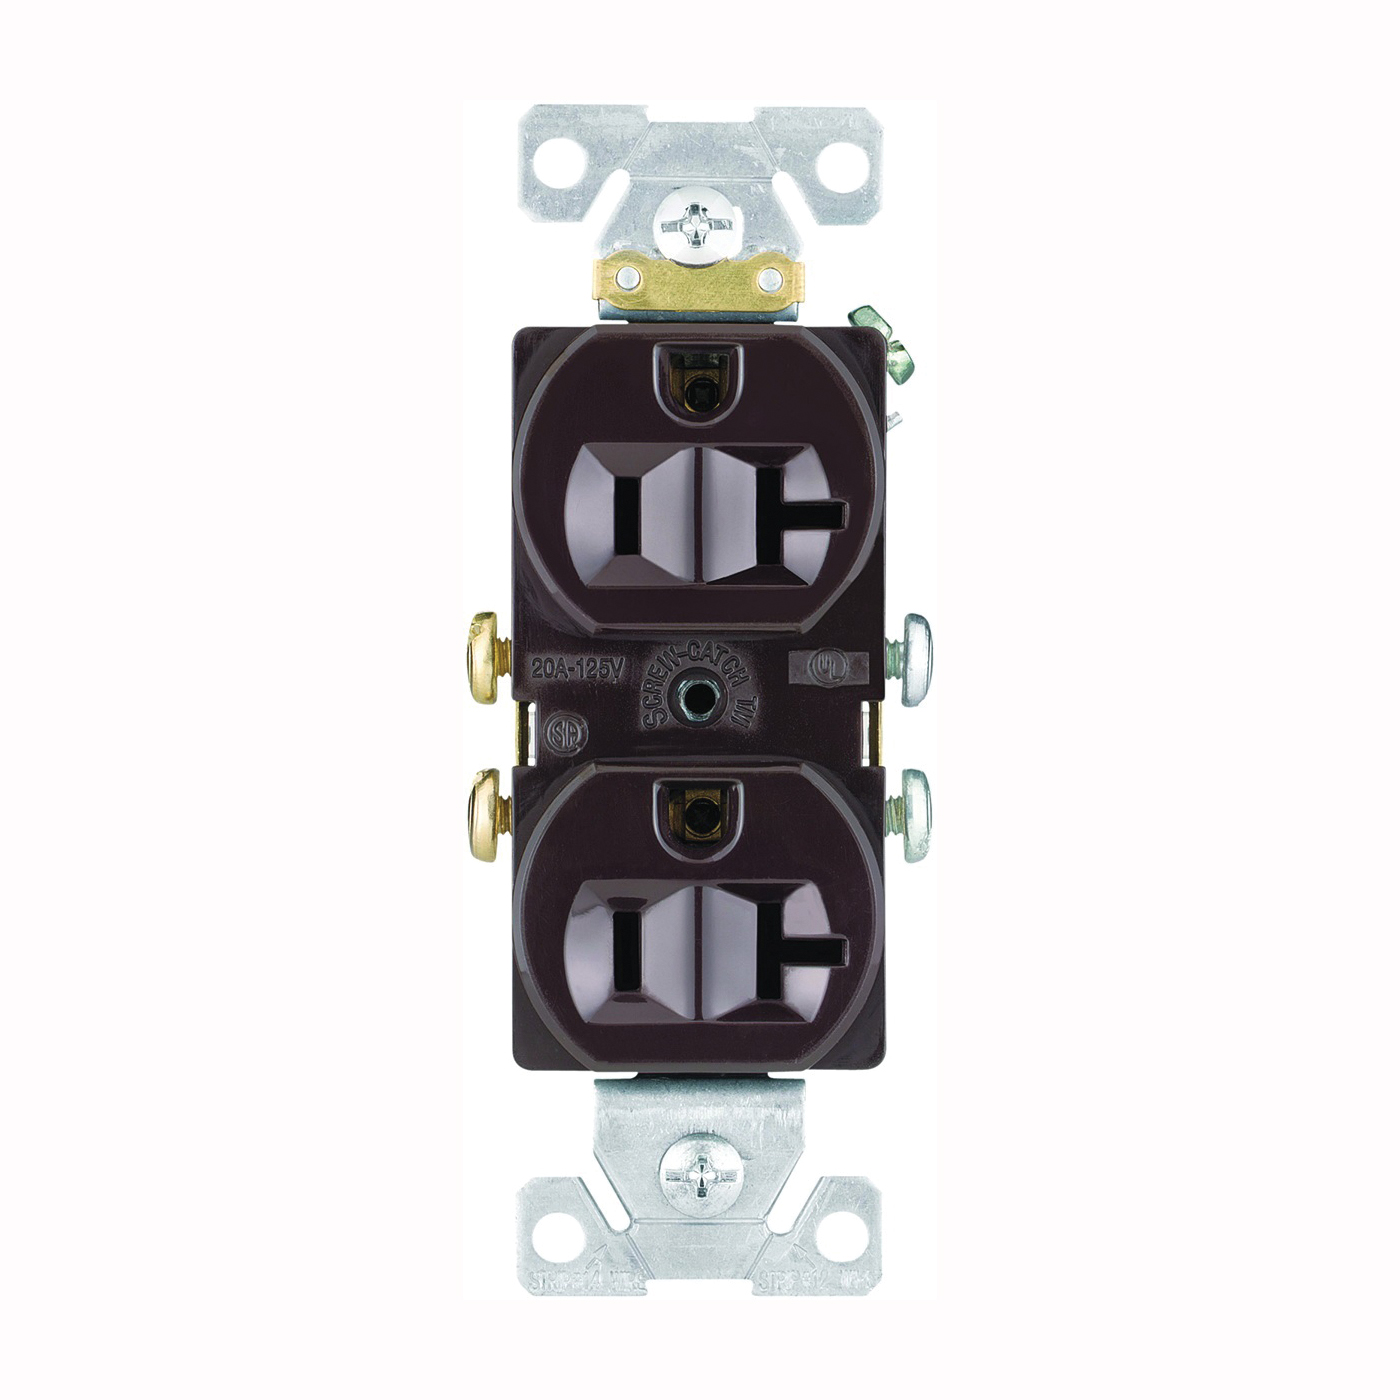 Picture of Eaton Wiring Devices CR20B Duplex Receptacle, 2-Pole, 20 A, 125 V, Side Wiring, NEMA: 5-20R, Brown